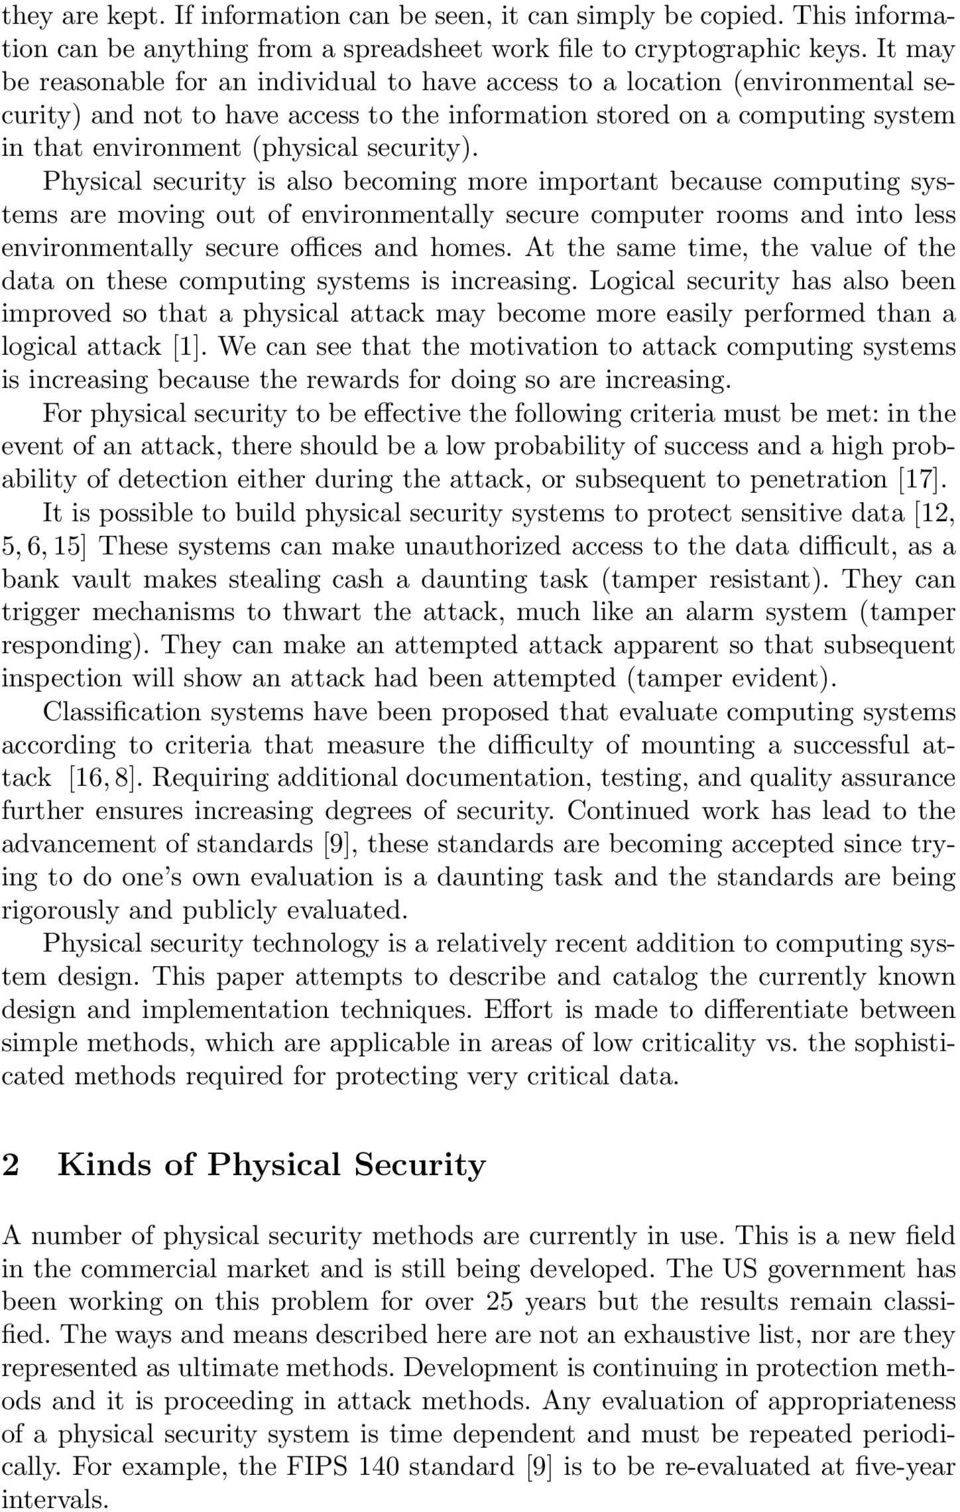 security). Physical security is also becoming more important because computing systems are moving out of environmentally secure computer rooms and into less environmentally secure offices and homes.